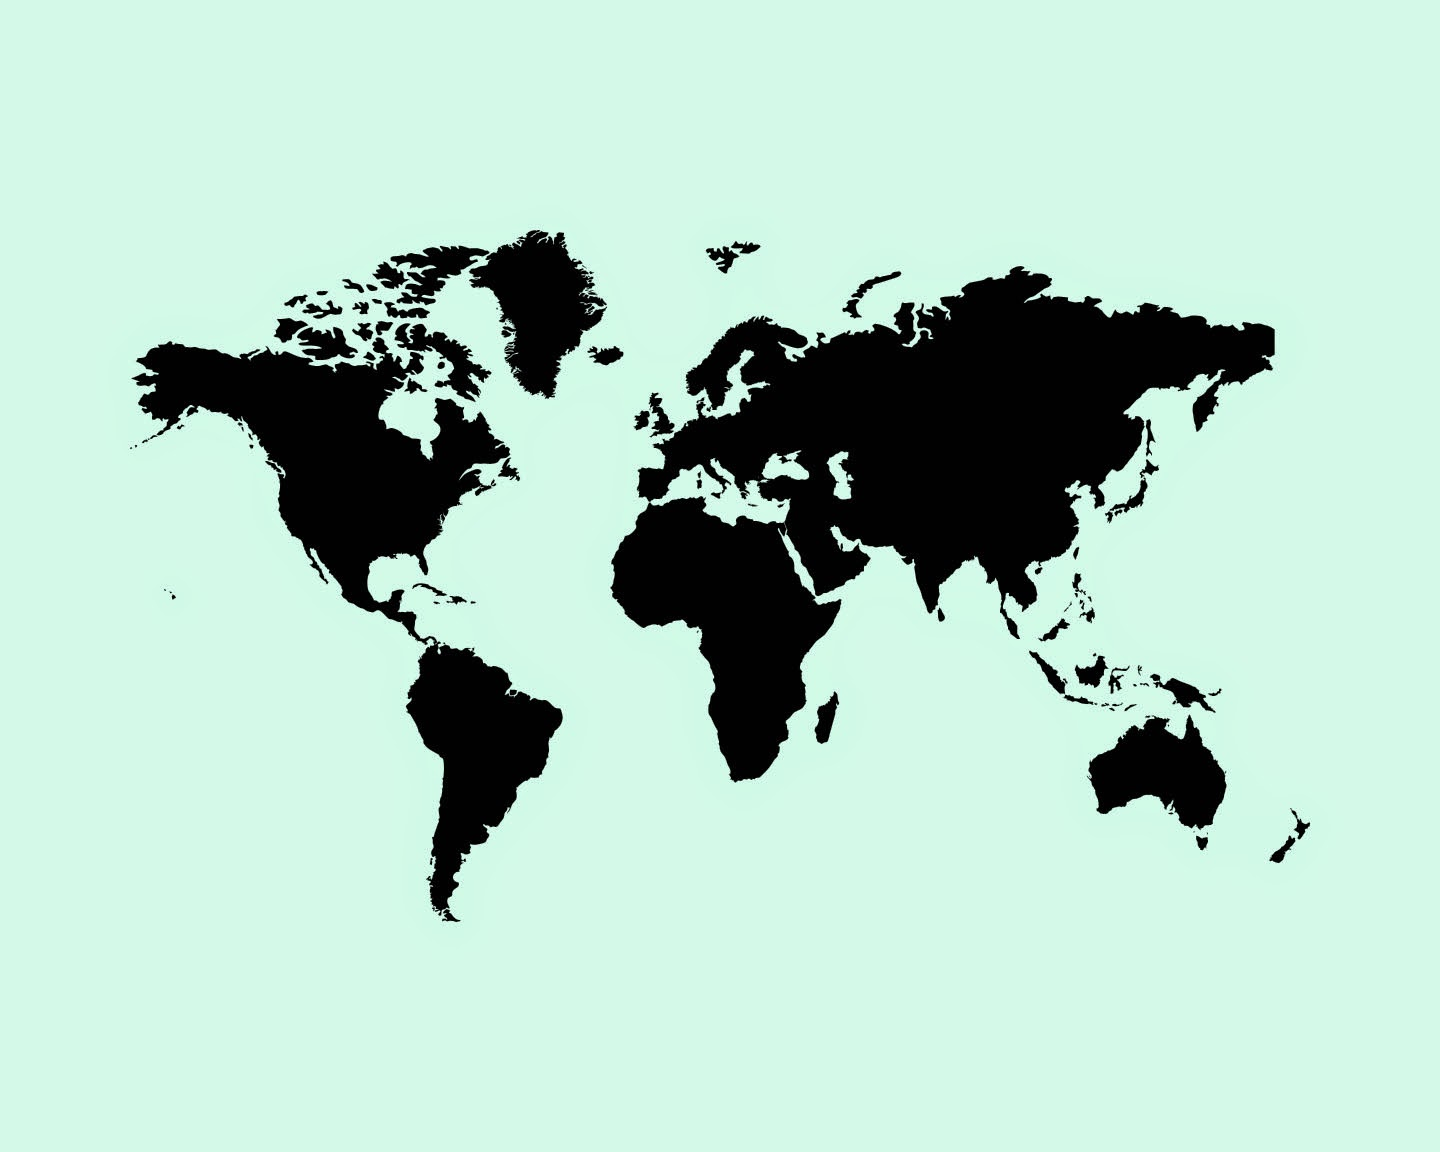 Amazing Mint Green Wallpaper Vector Free World Map Psd 2052771